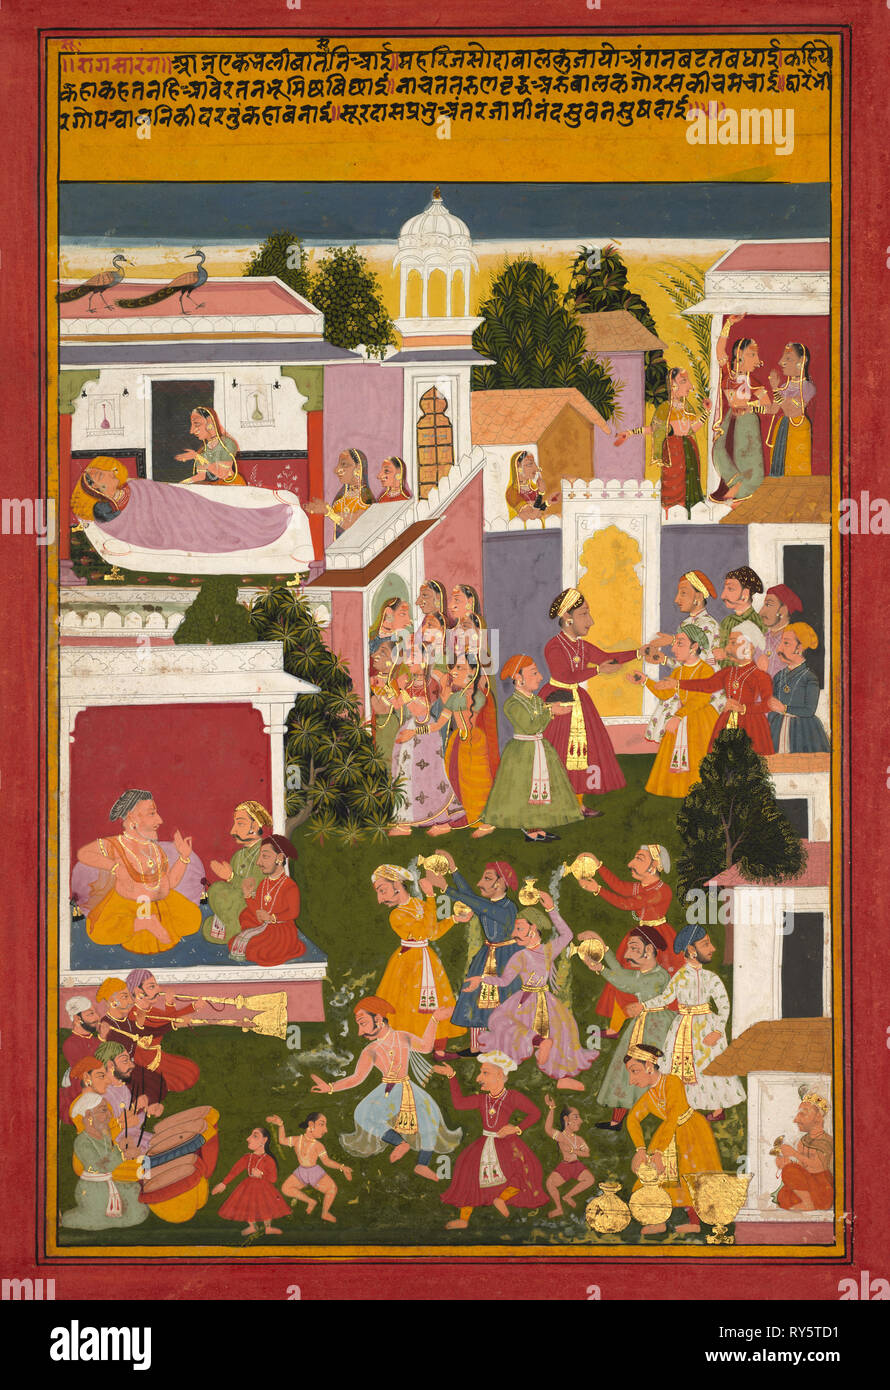 The Birth of Krishna, from a Sursagar of Surdas, c. 1700. Northwestern India, Rajasthan, Mewar school, early 18th Century. Opaque watercolor and gold on paper; image: 33.6 x 22.2 cm (13 1/4 x 8 3/4 in.); overall: 37 x 25.4 cm (14 9/16 x 10 in.); with mat: 49 x 36.3 cm (19 5/16 x 14 5/16 in Stock Photo